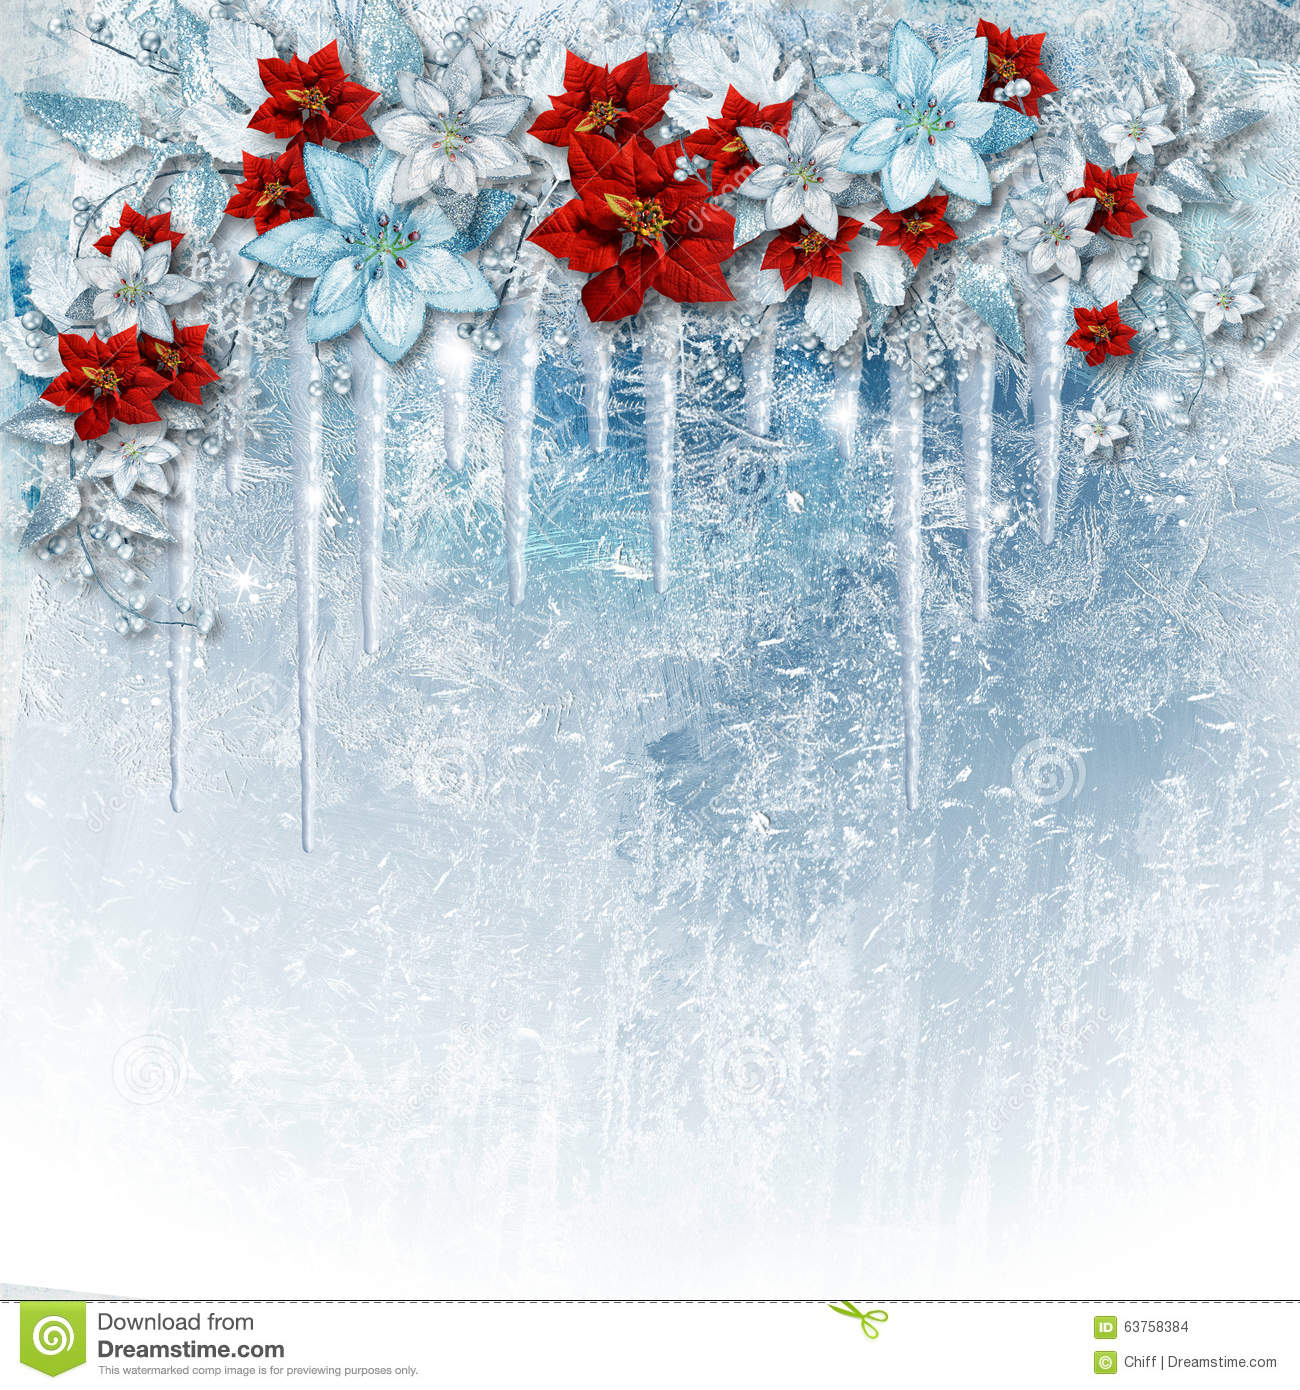 Christmas gorgeous flowers on ice background with icicles greet gorgeous christmas card with beautiful winter flowers iciclesand poinsettia with a copyspace on the background with patterns of frost izmirmasajfo